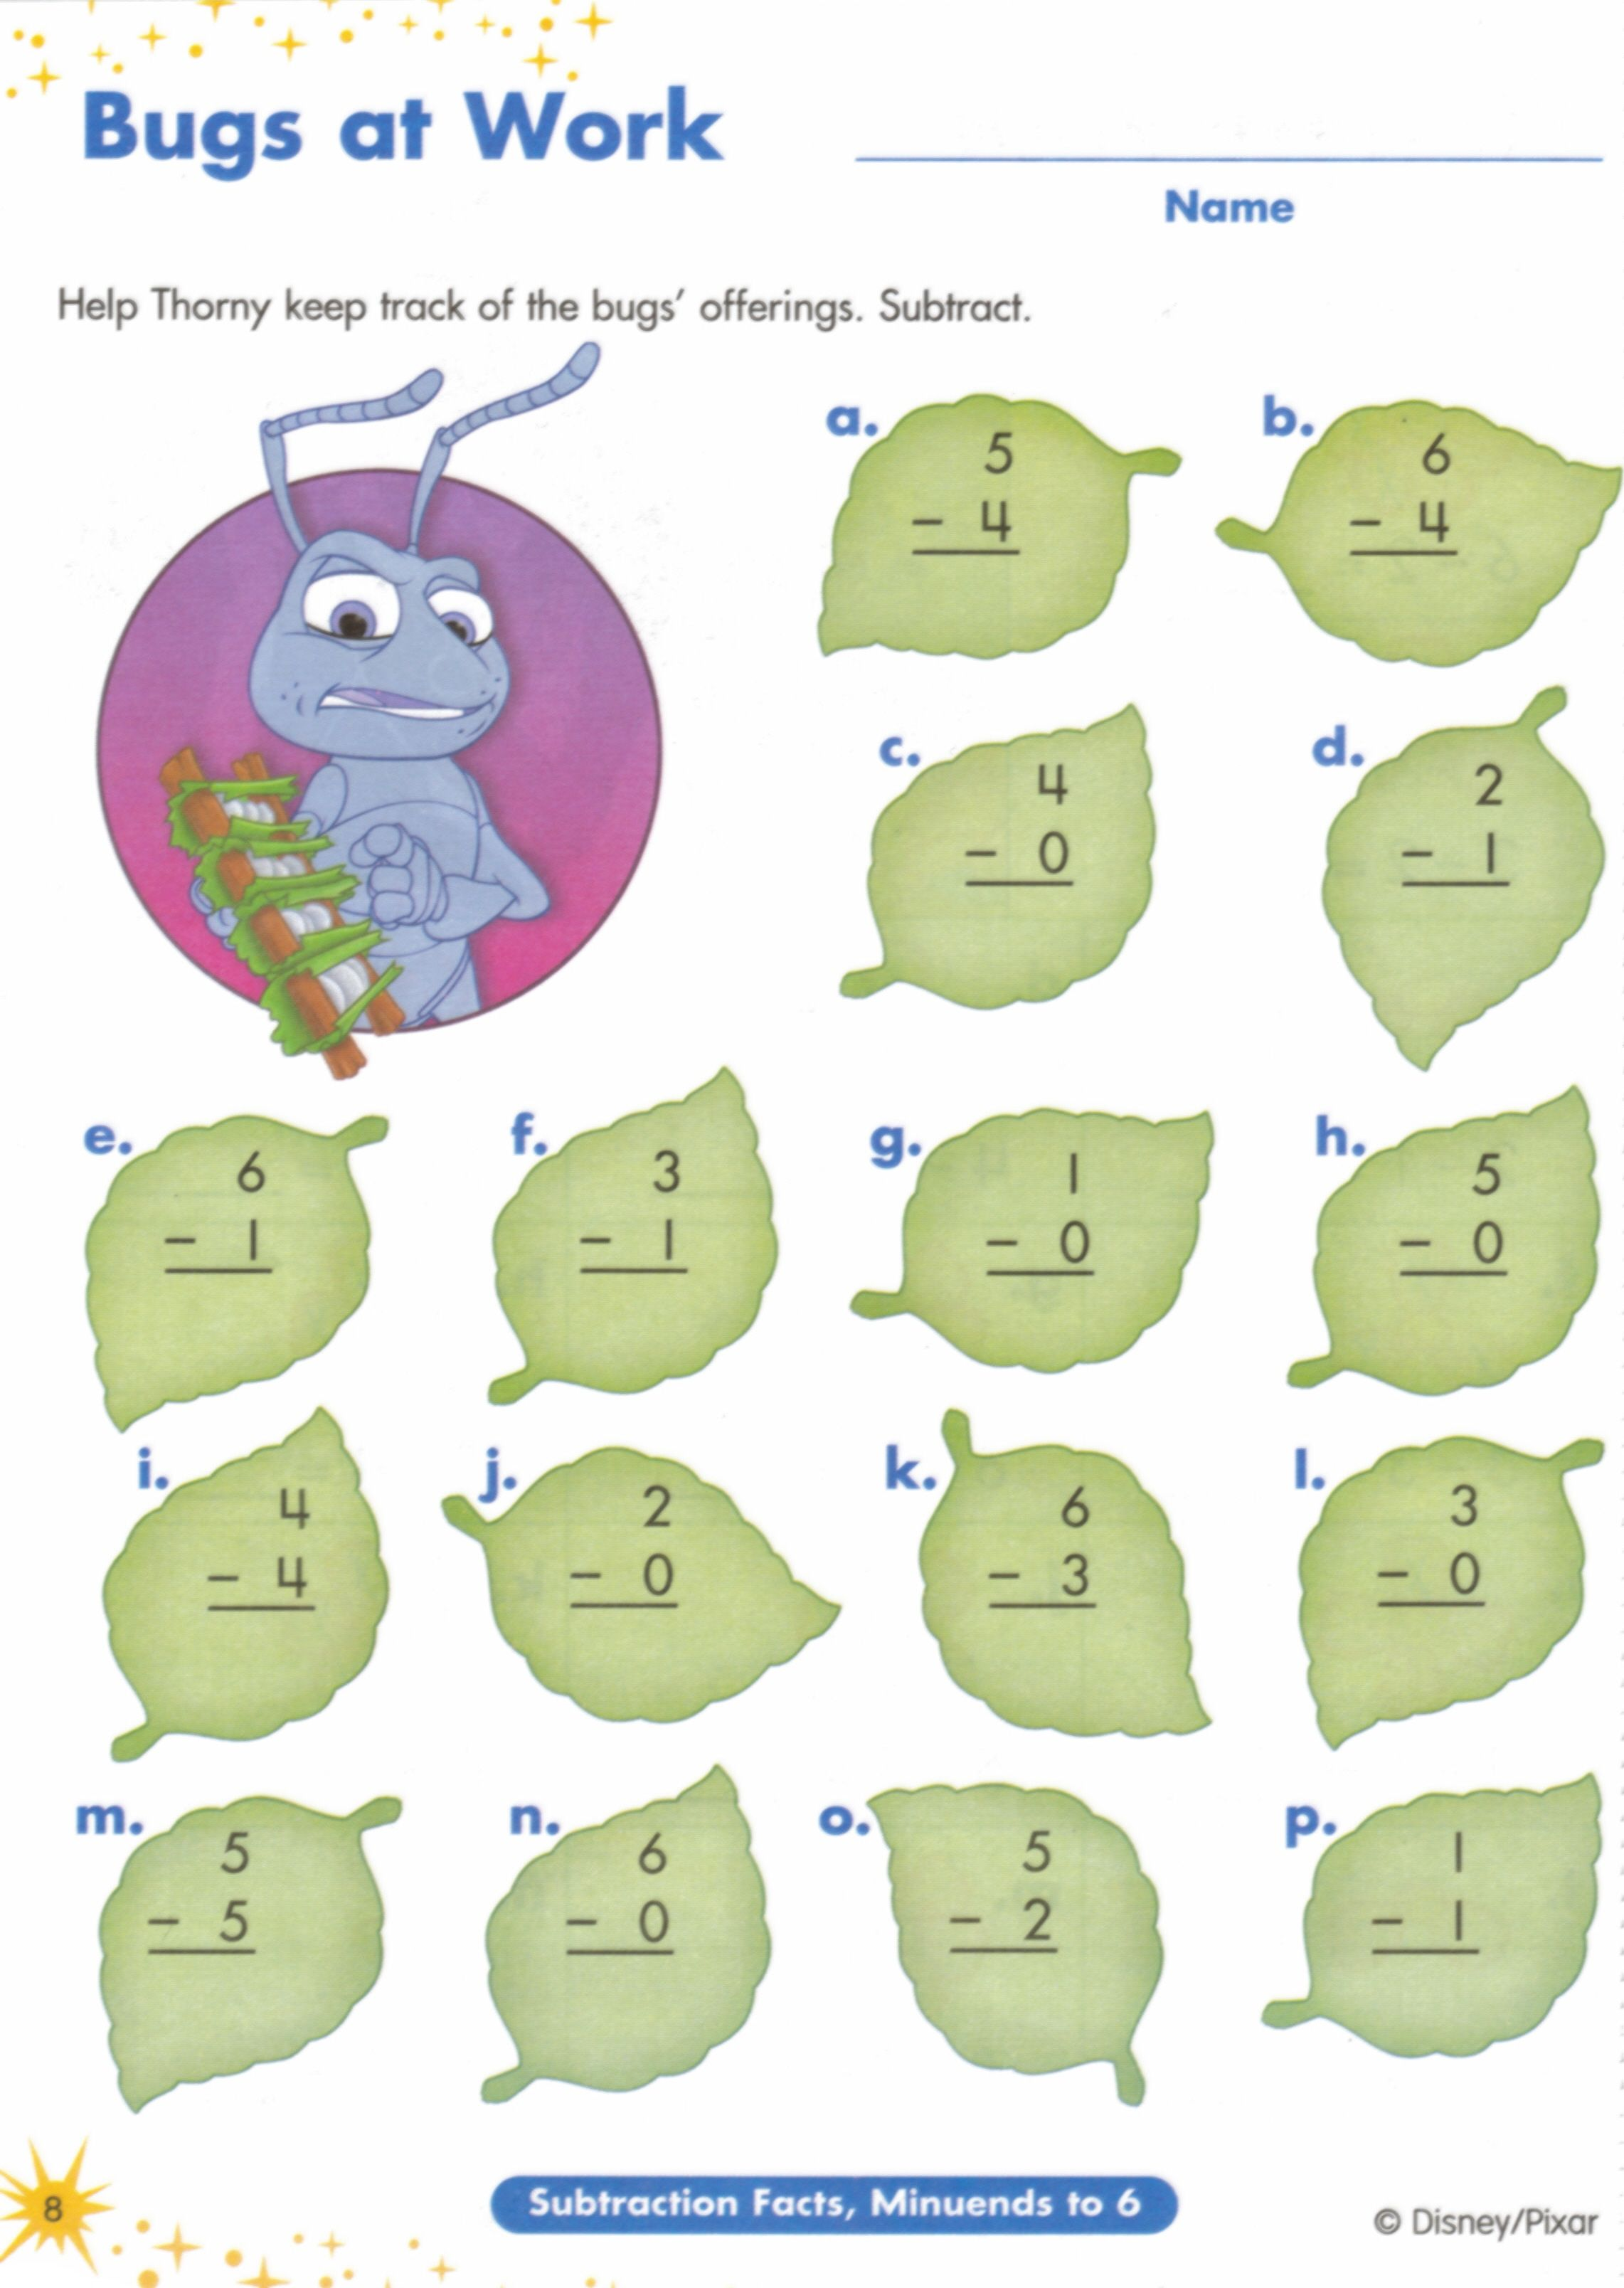 Weirdmailus  Nice  Images About Worksheets On Pinterest  Fun Facts For Kids  With Lovely  Images About Worksheets On Pinterest  Fun Facts For Kids Earth Day Worksheets And Jungles With Lovely Prime Number And Composite Number Worksheets Also Year  Worksheets In Addition Nelson Handwriting Worksheets Free And Count By Numbers Worksheets As Well As Employment Vocabulary Worksheets Additionally Art Vocabulary Worksheets From Pinterestcom With Weirdmailus  Lovely  Images About Worksheets On Pinterest  Fun Facts For Kids  With Lovely  Images About Worksheets On Pinterest  Fun Facts For Kids Earth Day Worksheets And Jungles And Nice Prime Number And Composite Number Worksheets Also Year  Worksheets In Addition Nelson Handwriting Worksheets Free From Pinterestcom